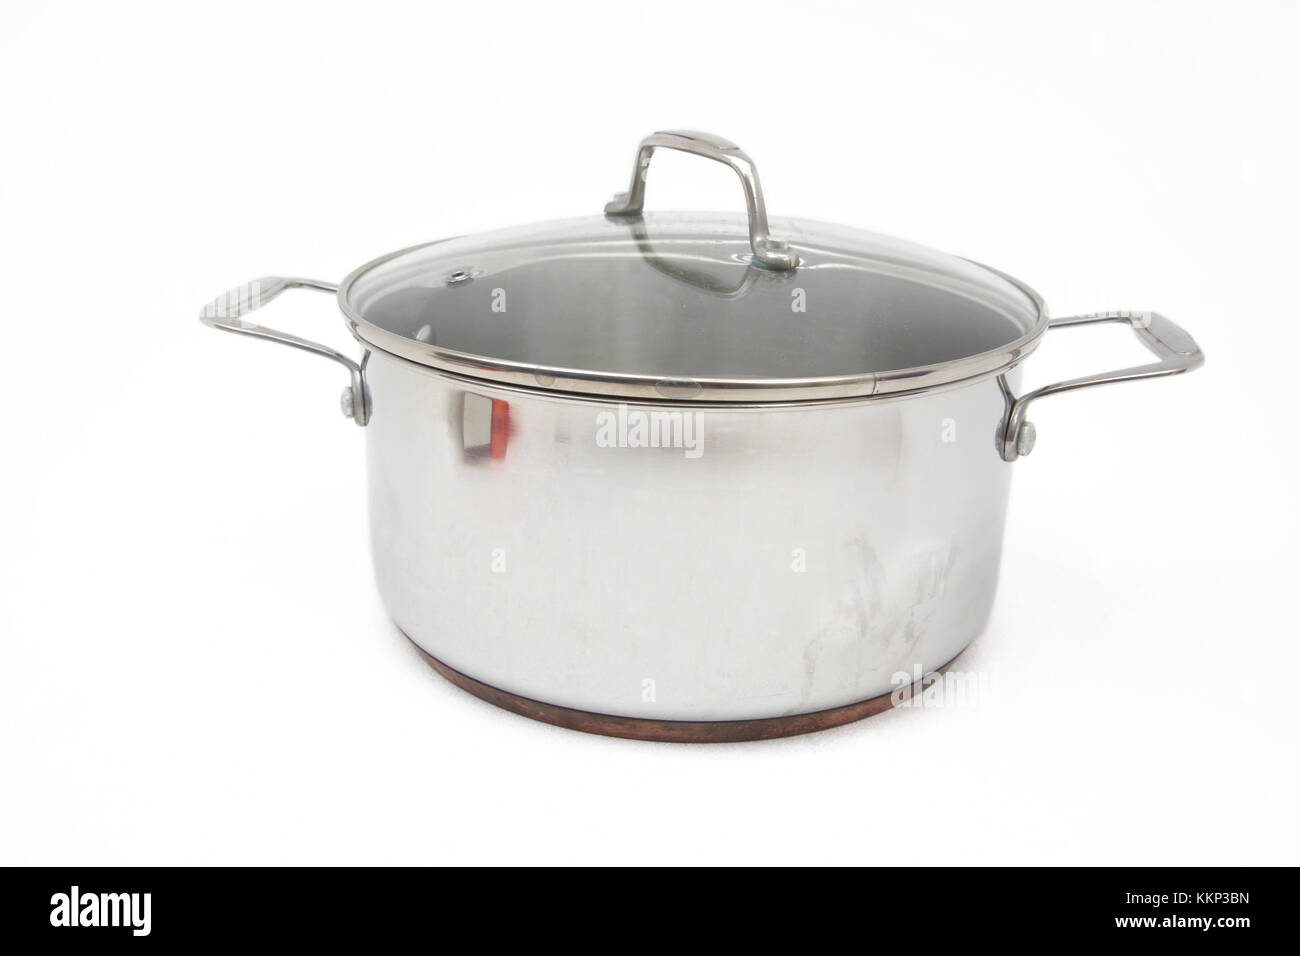 Stainless Steel Copper Bottom Cooking Pot with Glass Lid - Stock Image